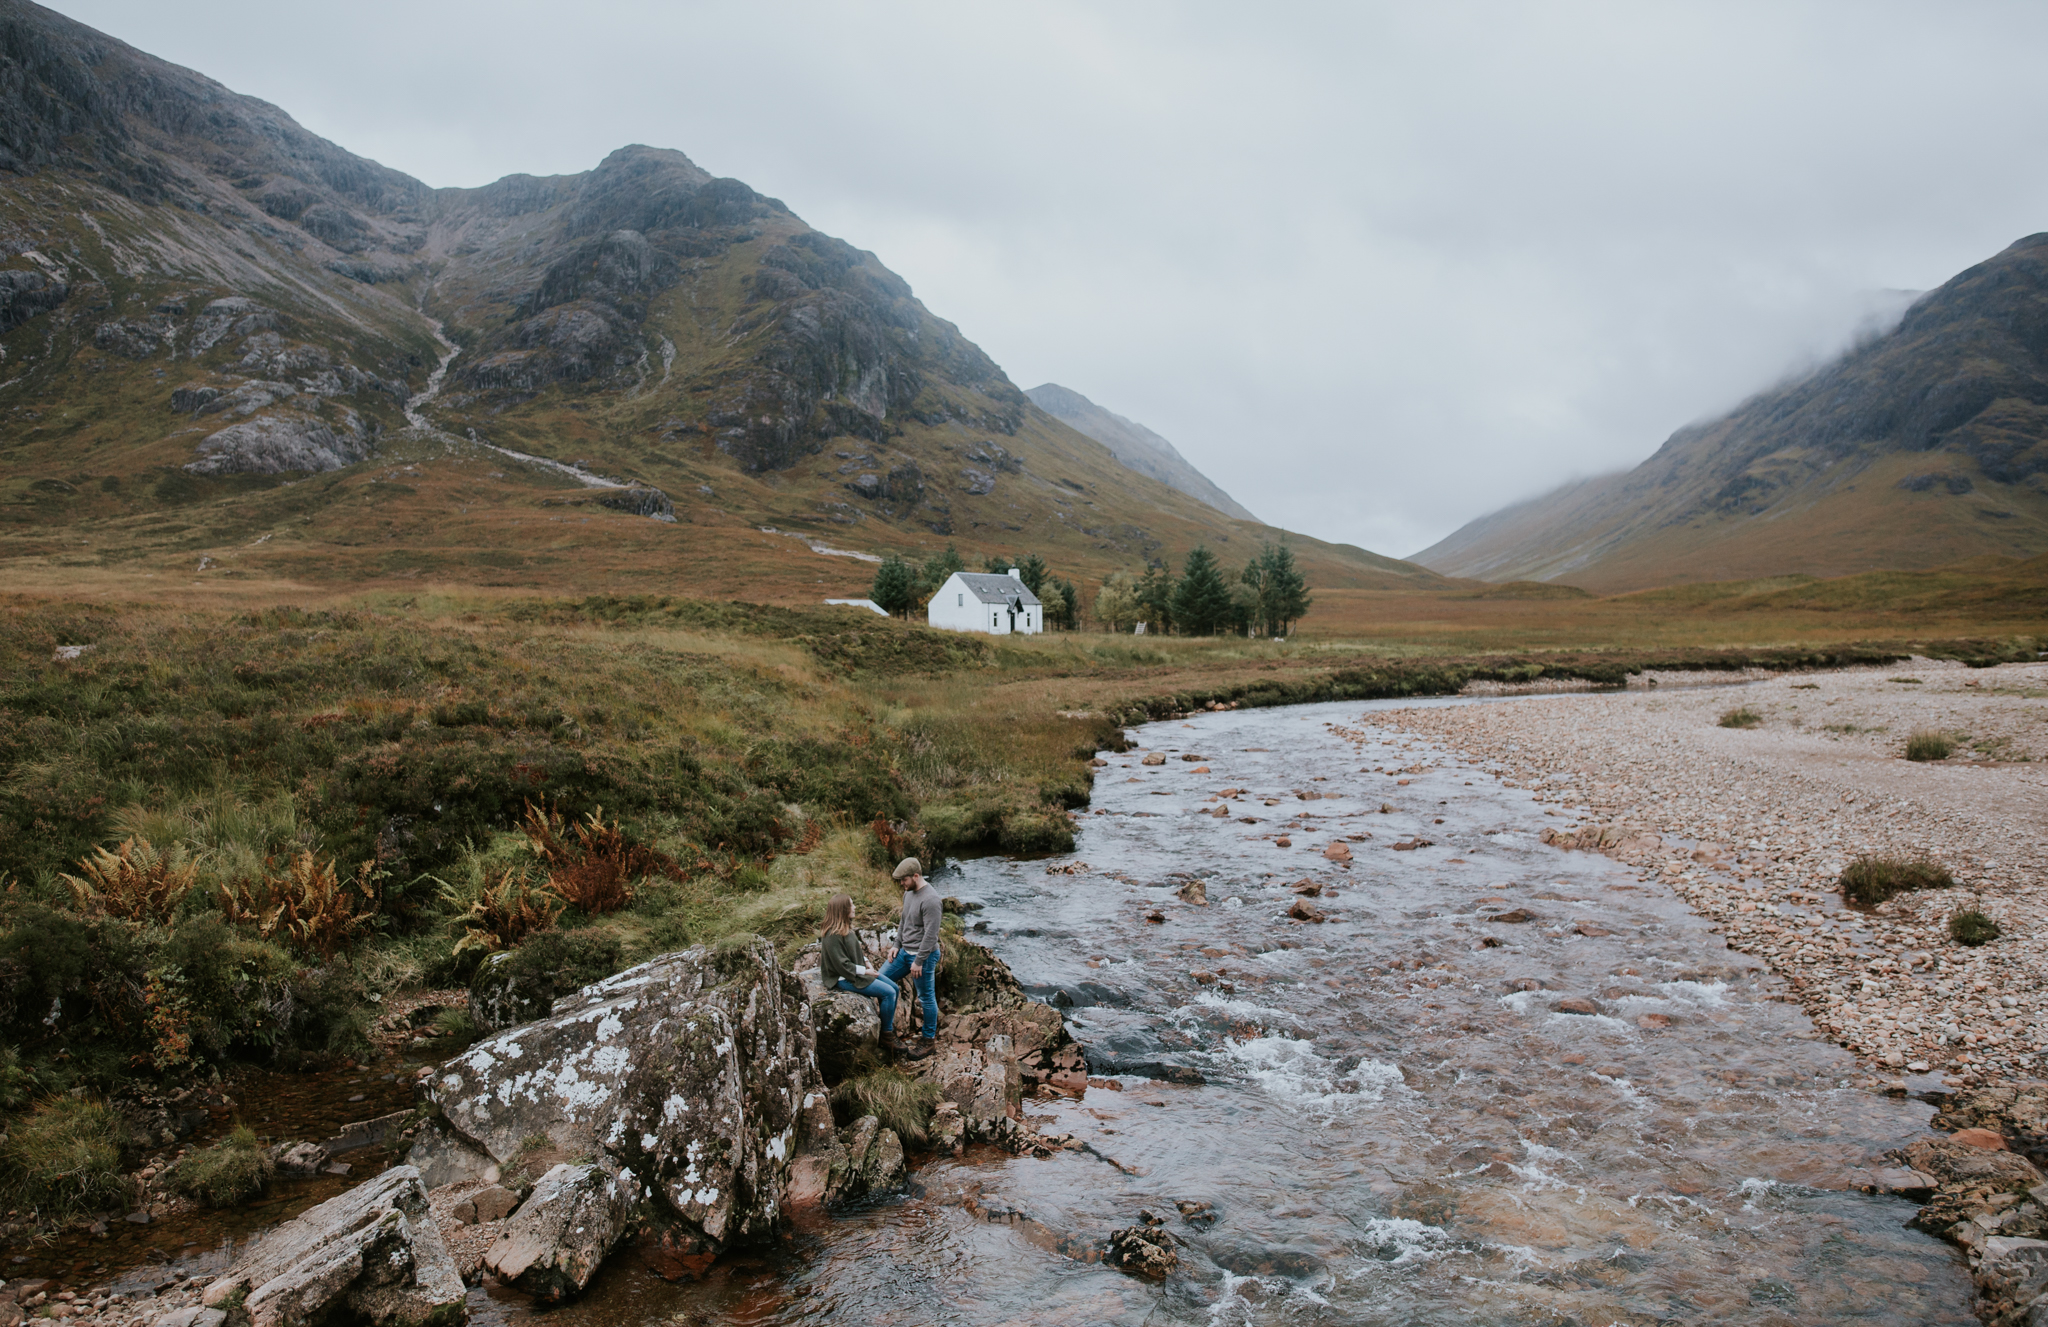 The couple is sitting on the rocks in the middle of the Scottish Glencoe